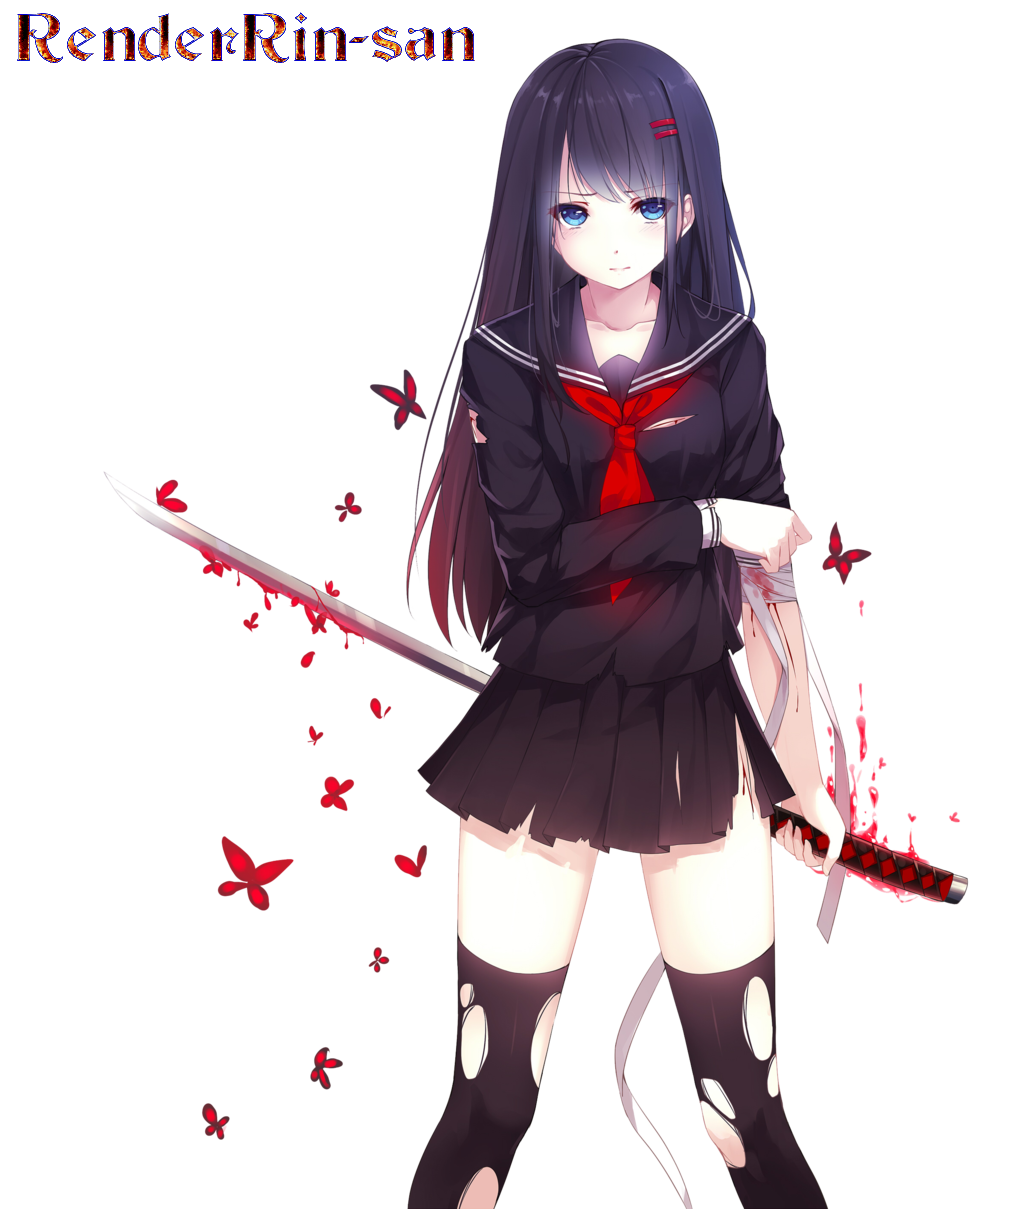 Anime girl with sword-7454